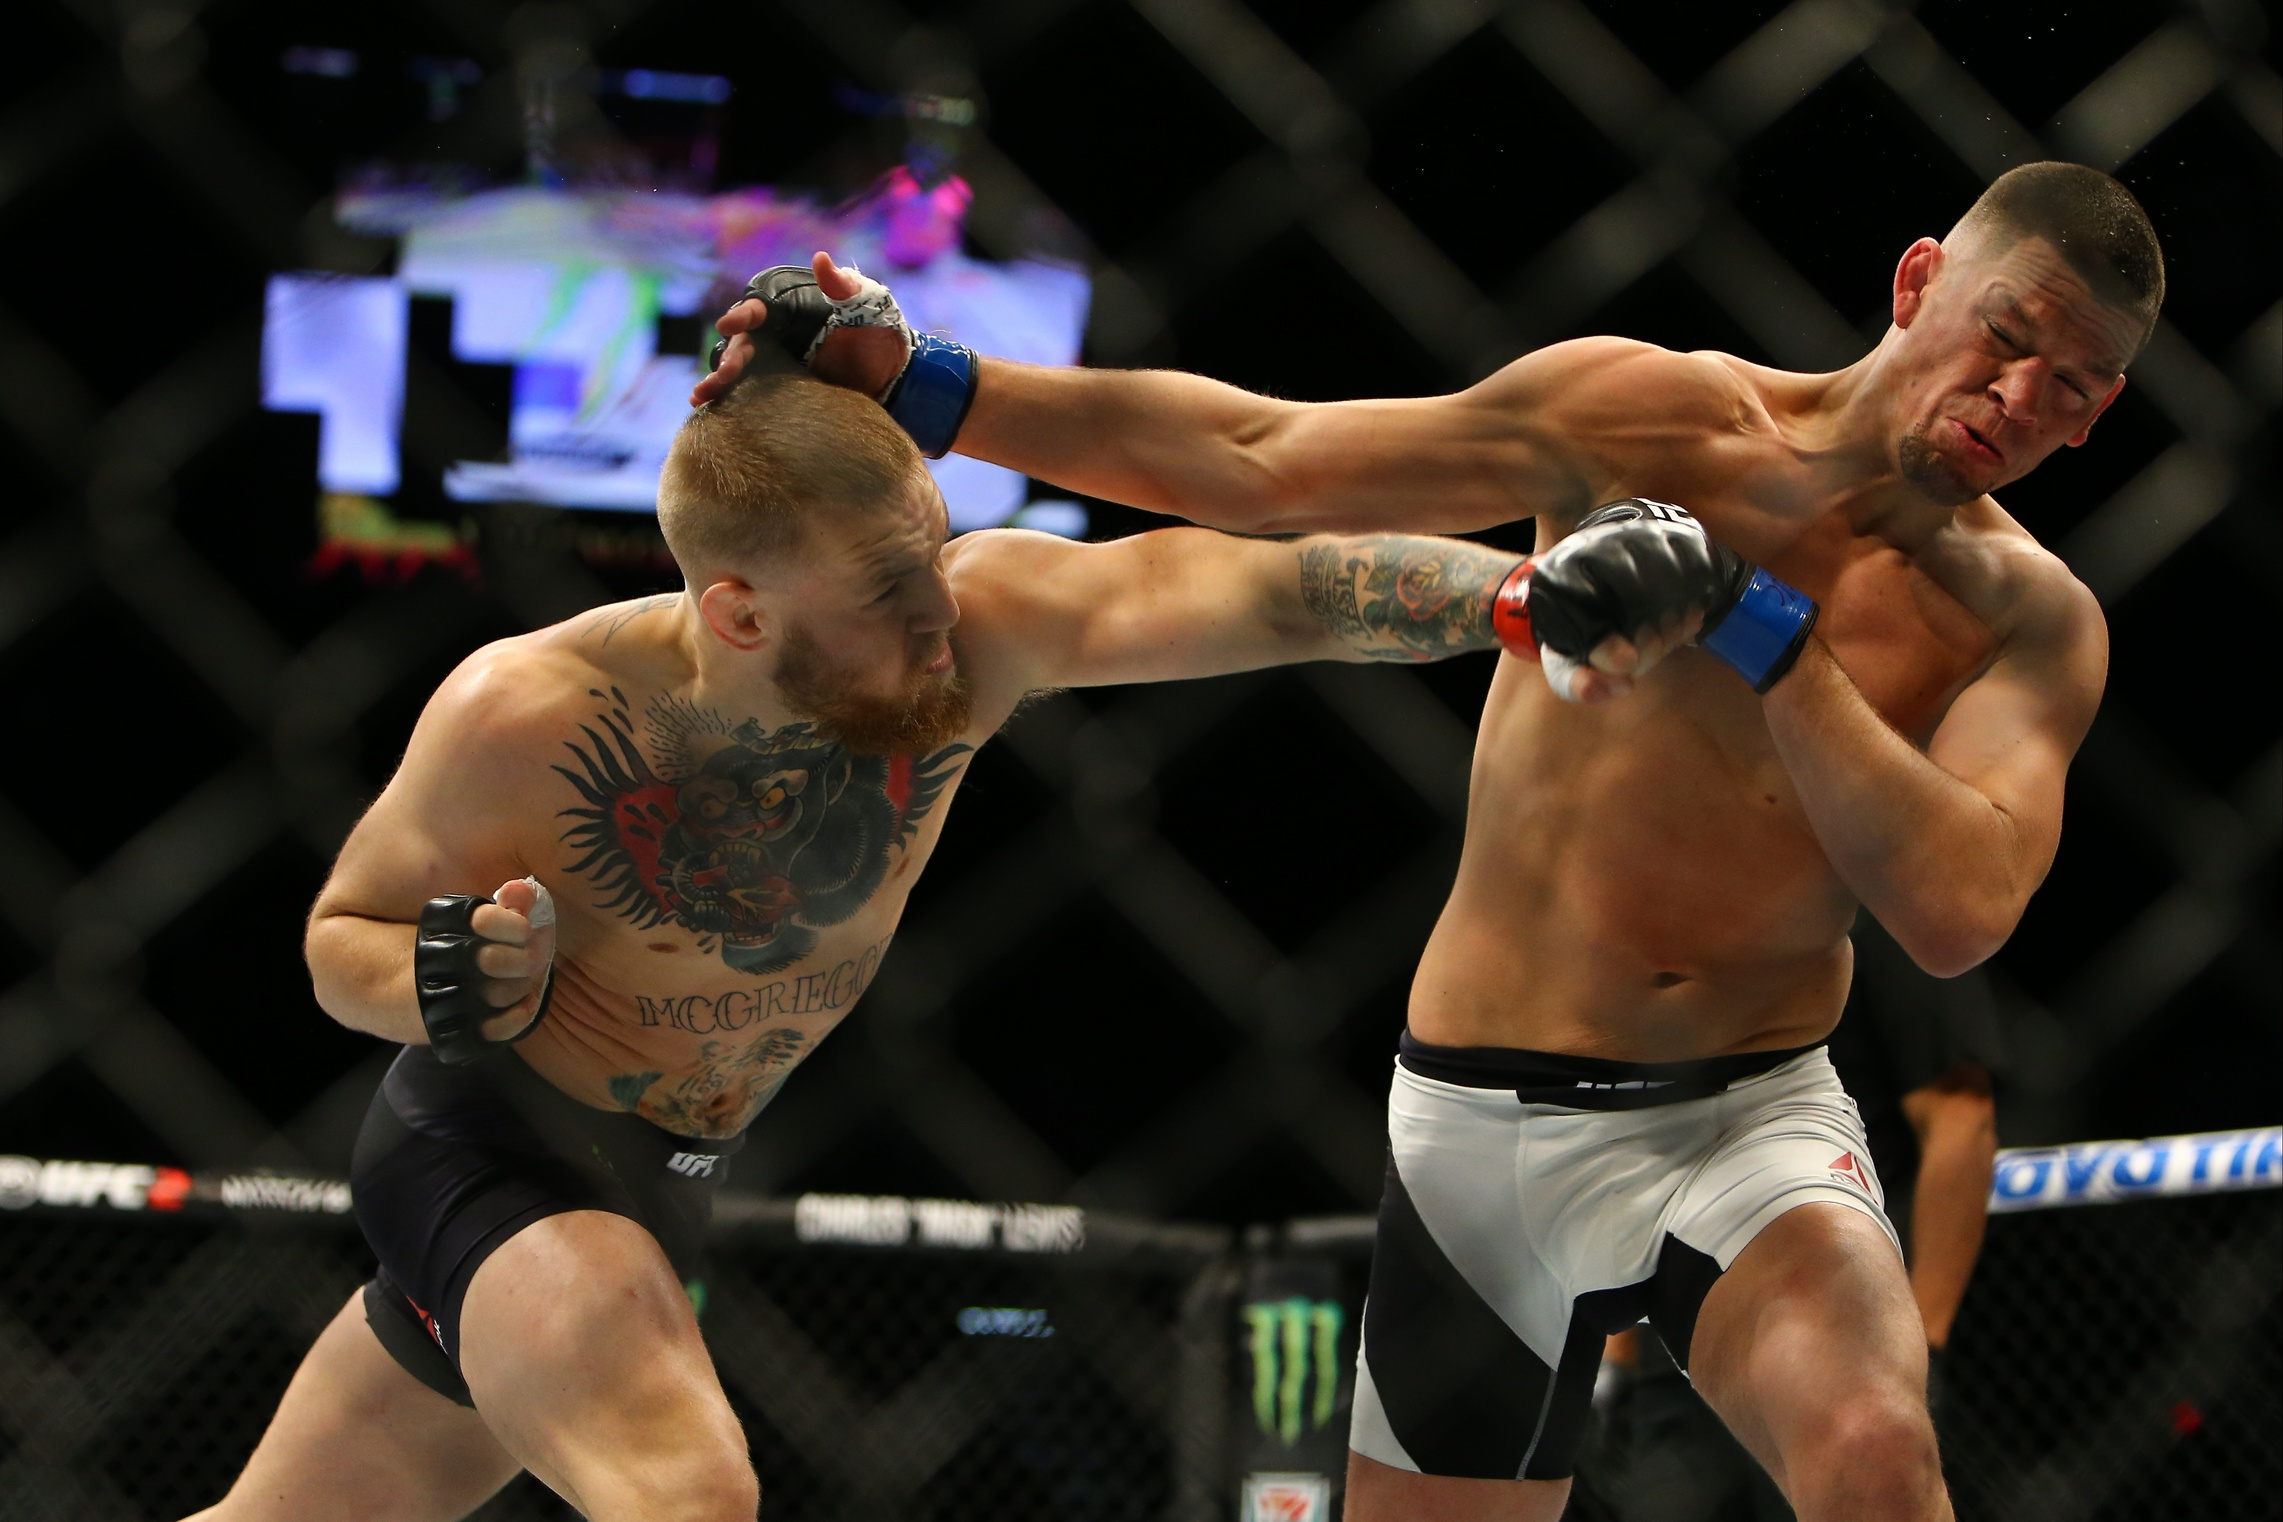 MMA media predict Nate Diaz vs. Conor McGregor at UFC 202